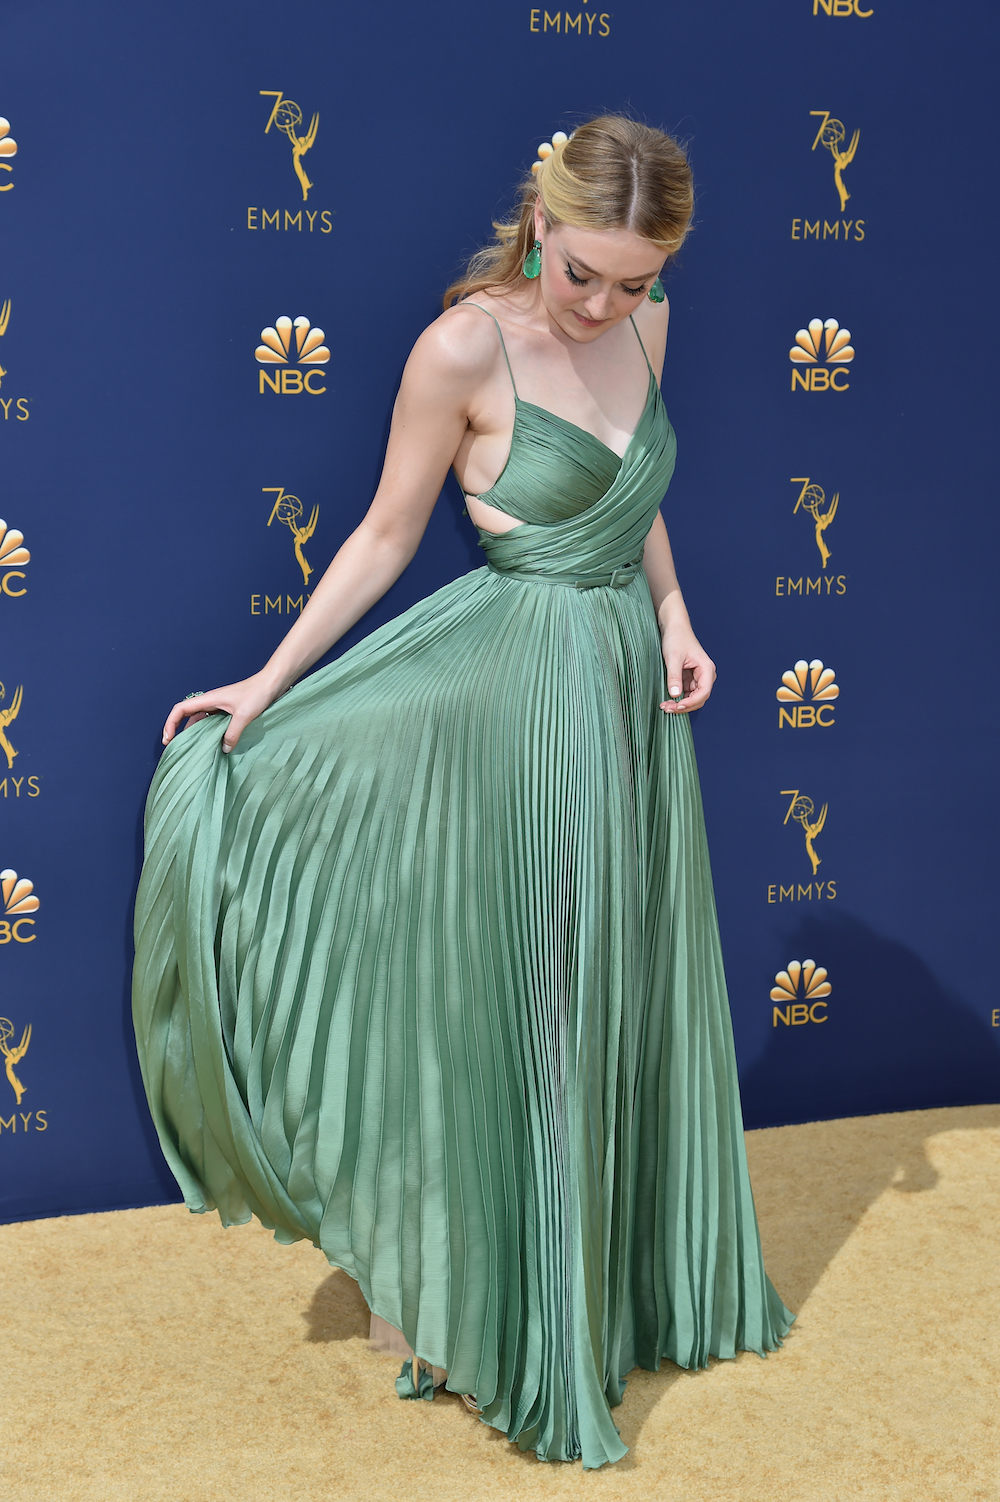 Dakota Fanning Wore A Green Dior Gown At 2018 Emmys Awards